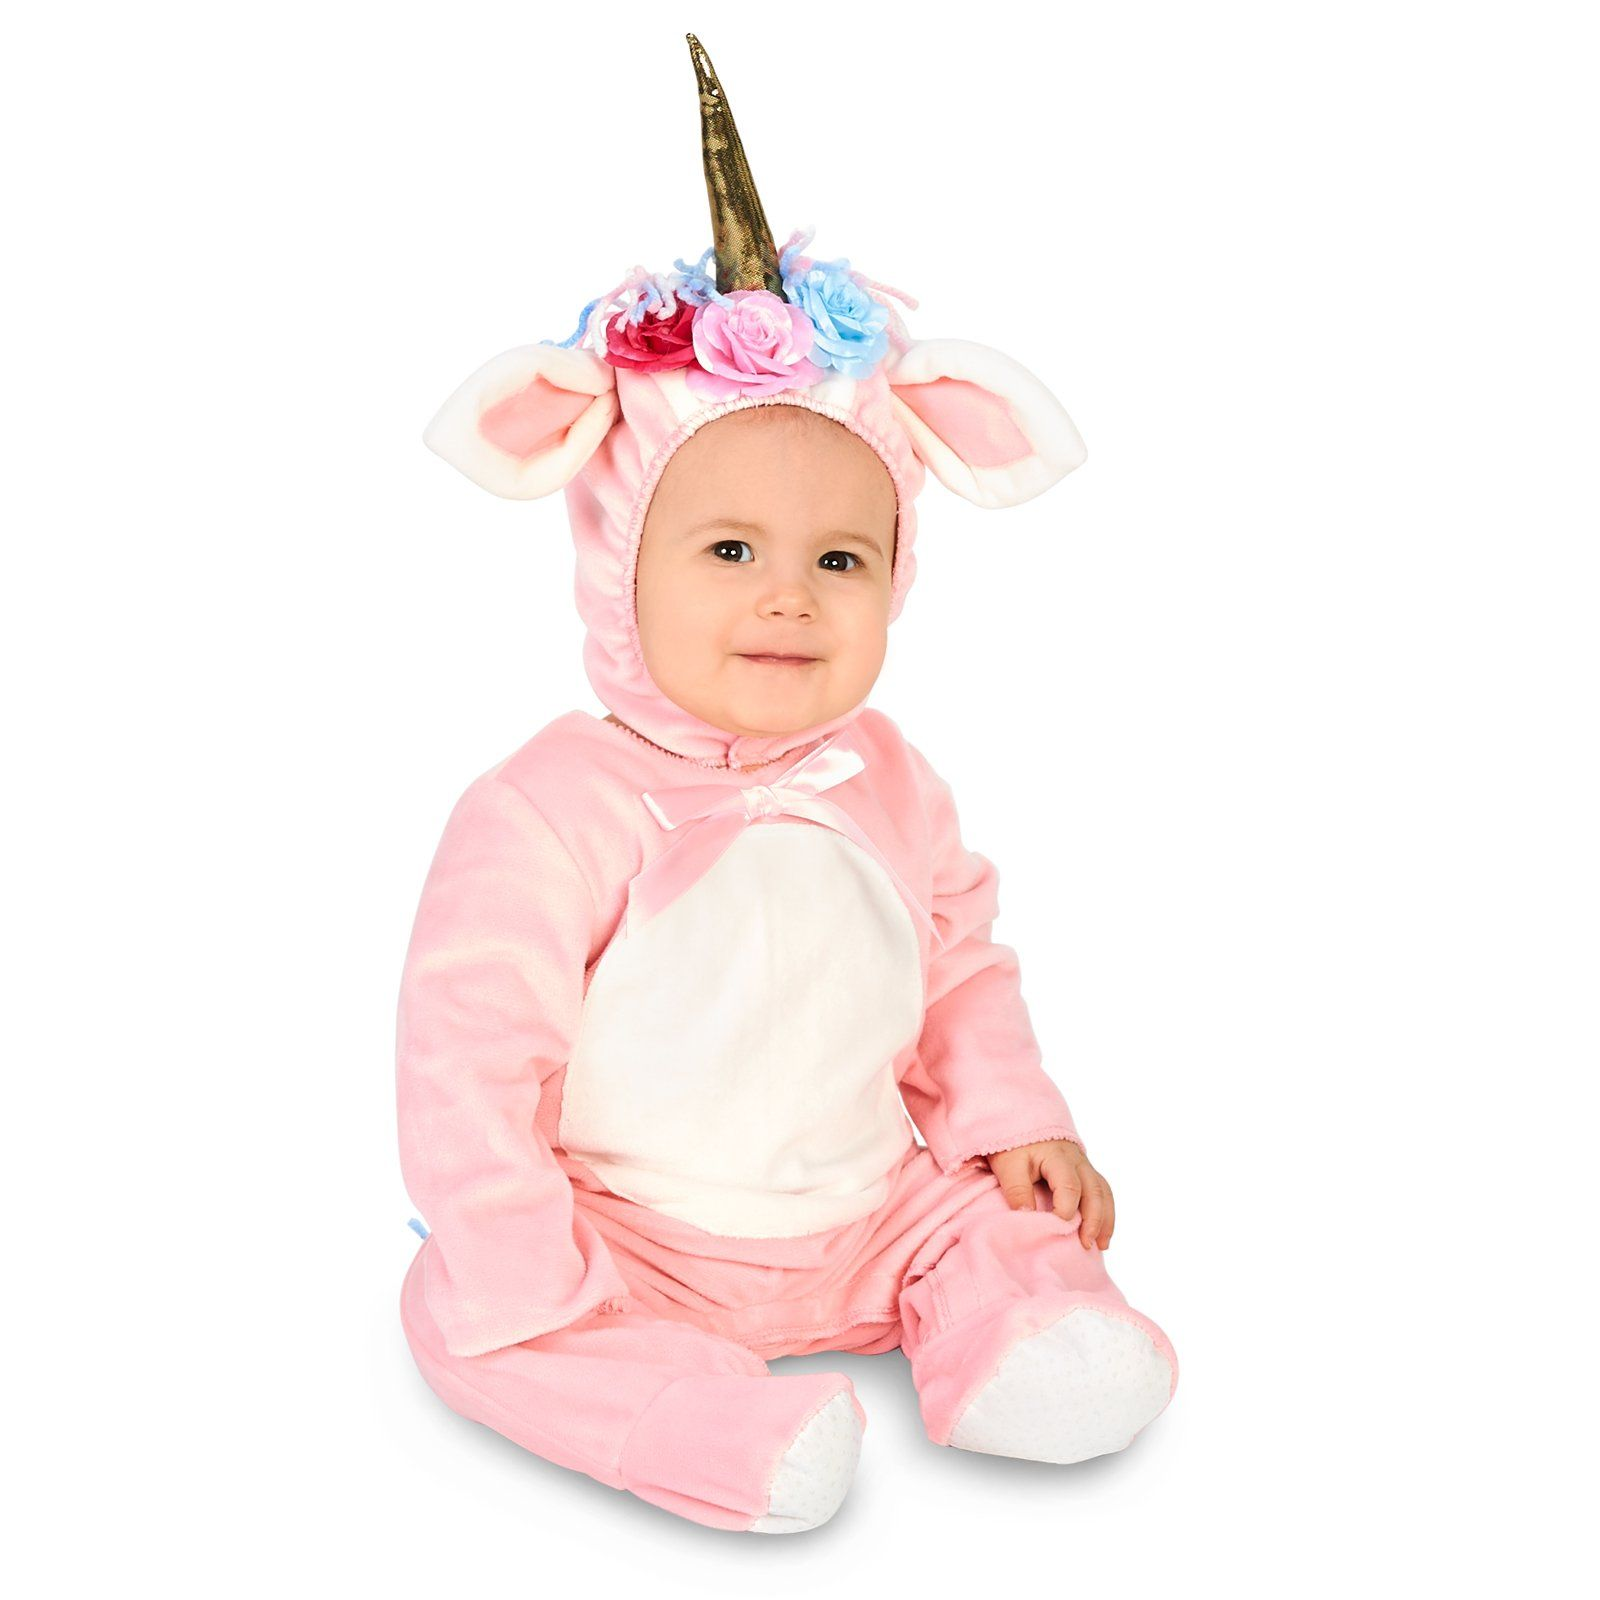 059af236c612 Unicorn Costume, Toddler Halloween Costumes, Cute Costumes, Baby Costumes,  Cool Baby Stuff